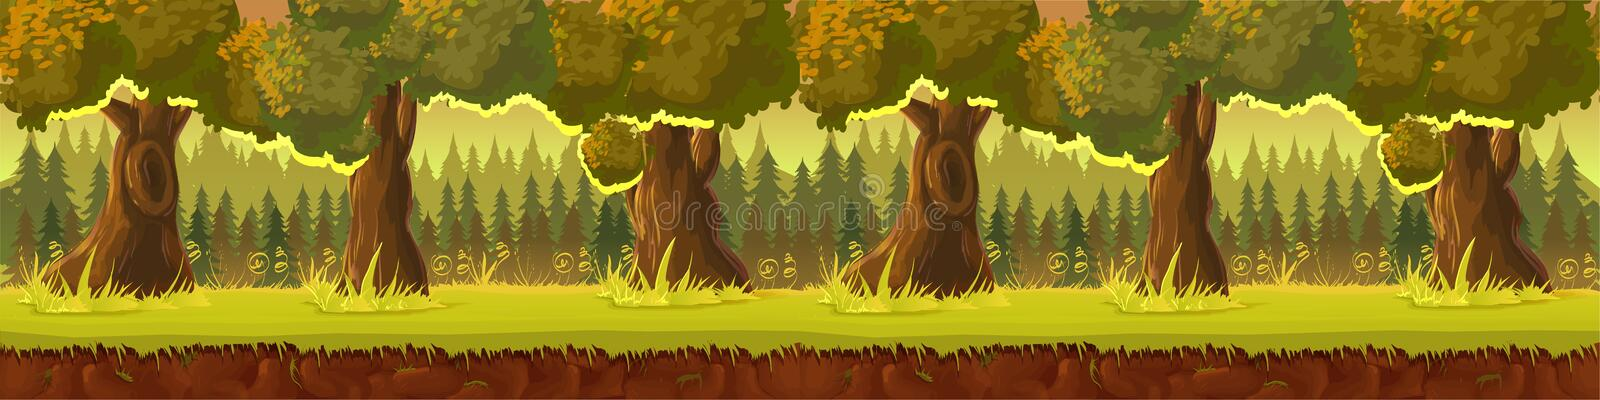 Meadow and forest, nature landscape, vector background royalty free illustration